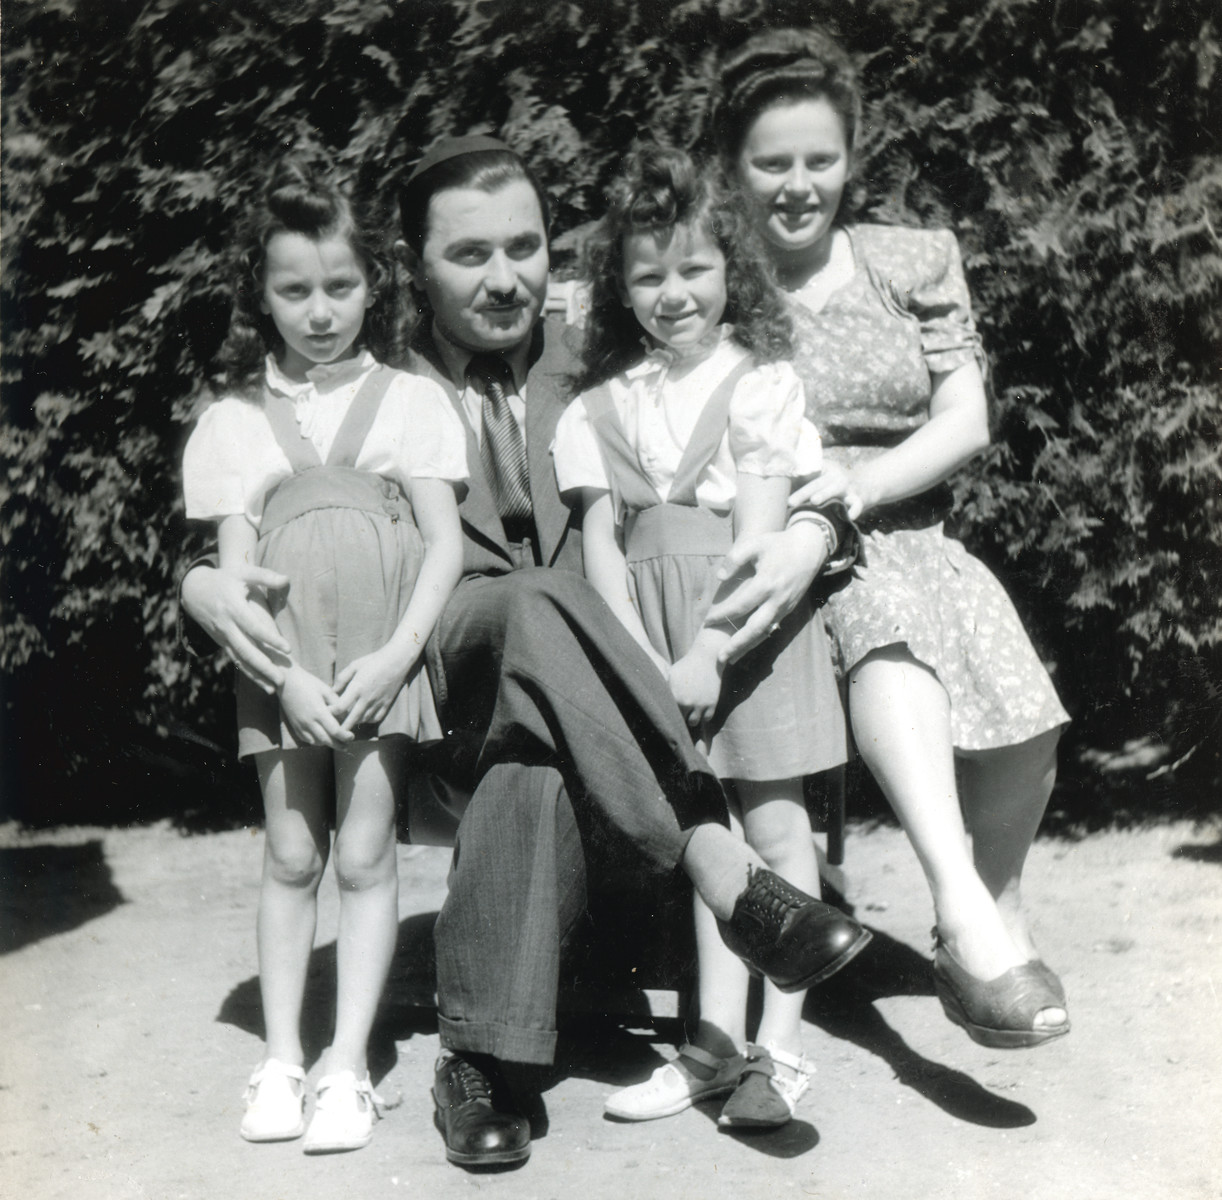 Rabbi Yehuda Lipot and Sara Meisels pose with their two daughters Yehudit (left) and Miriam (right) in the Pocking displaced persons camp.